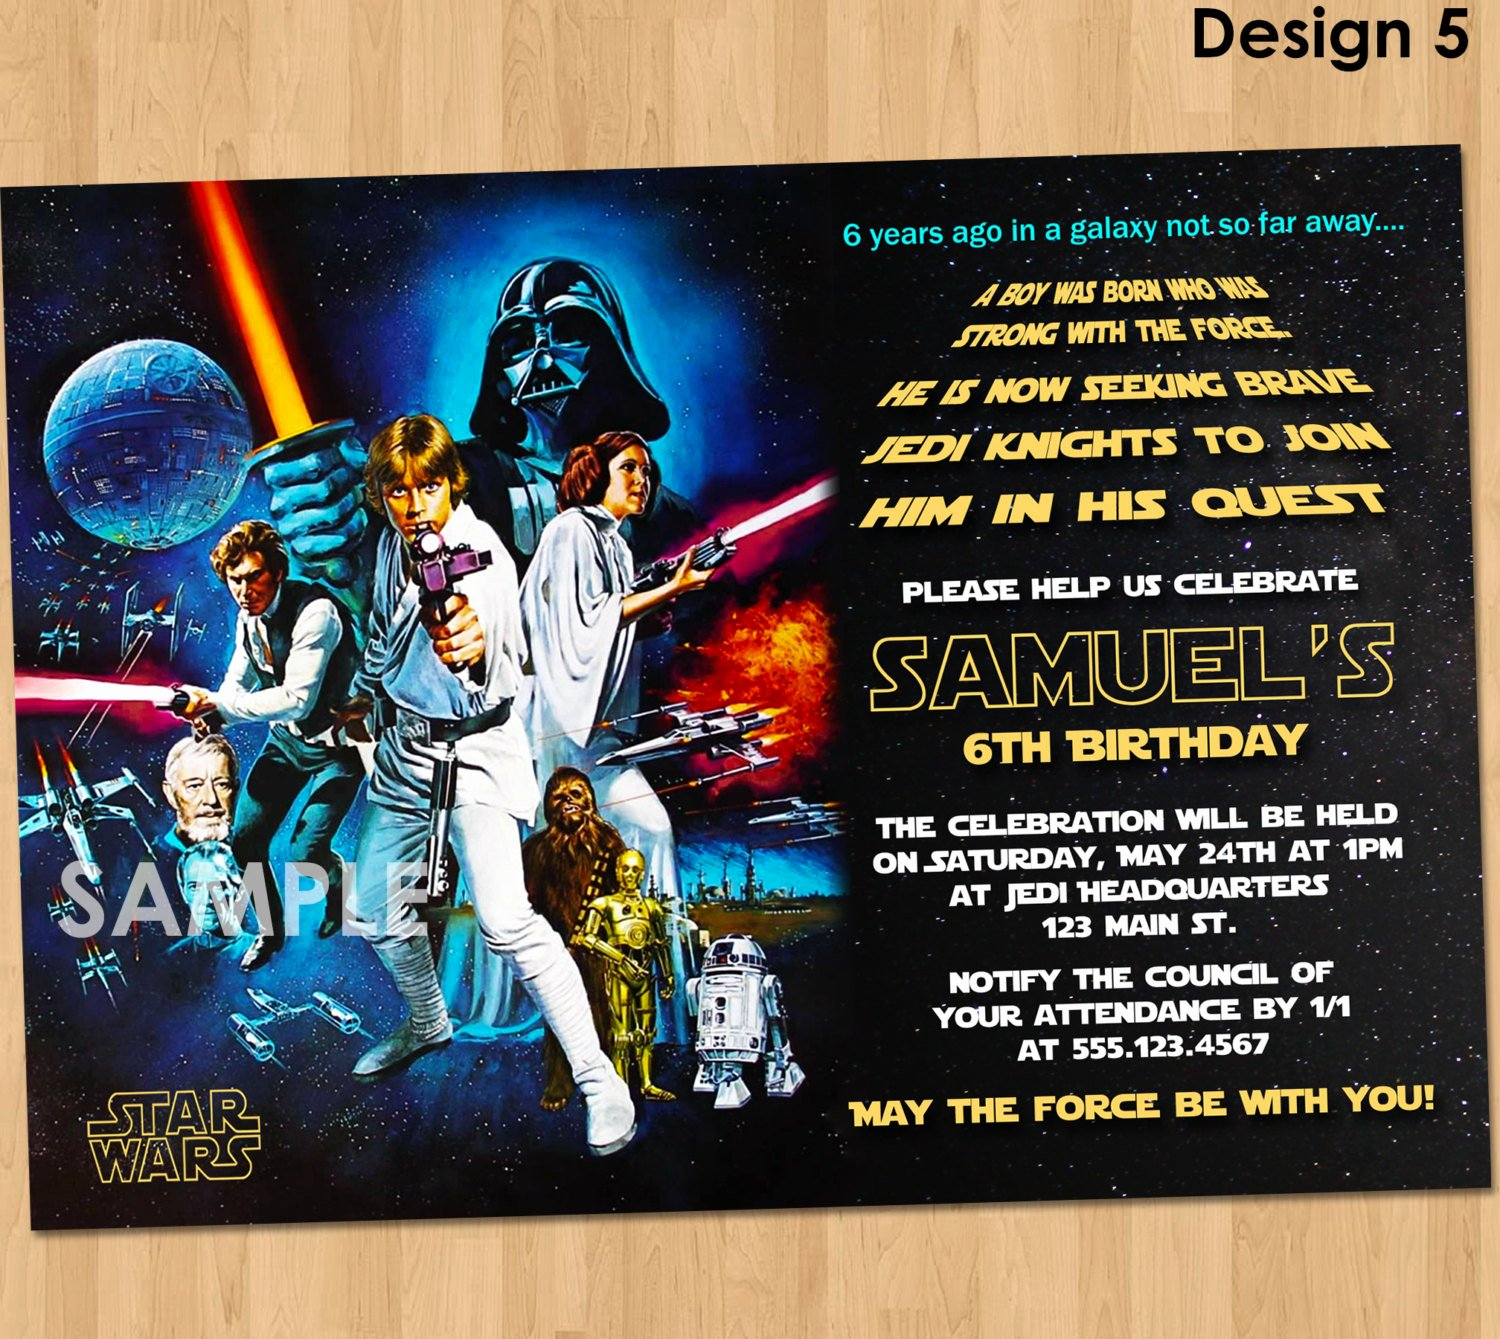 Stars Wars Birthday Invitations New Star Wars Birthday Invitation Star Wars Invitation Birthday